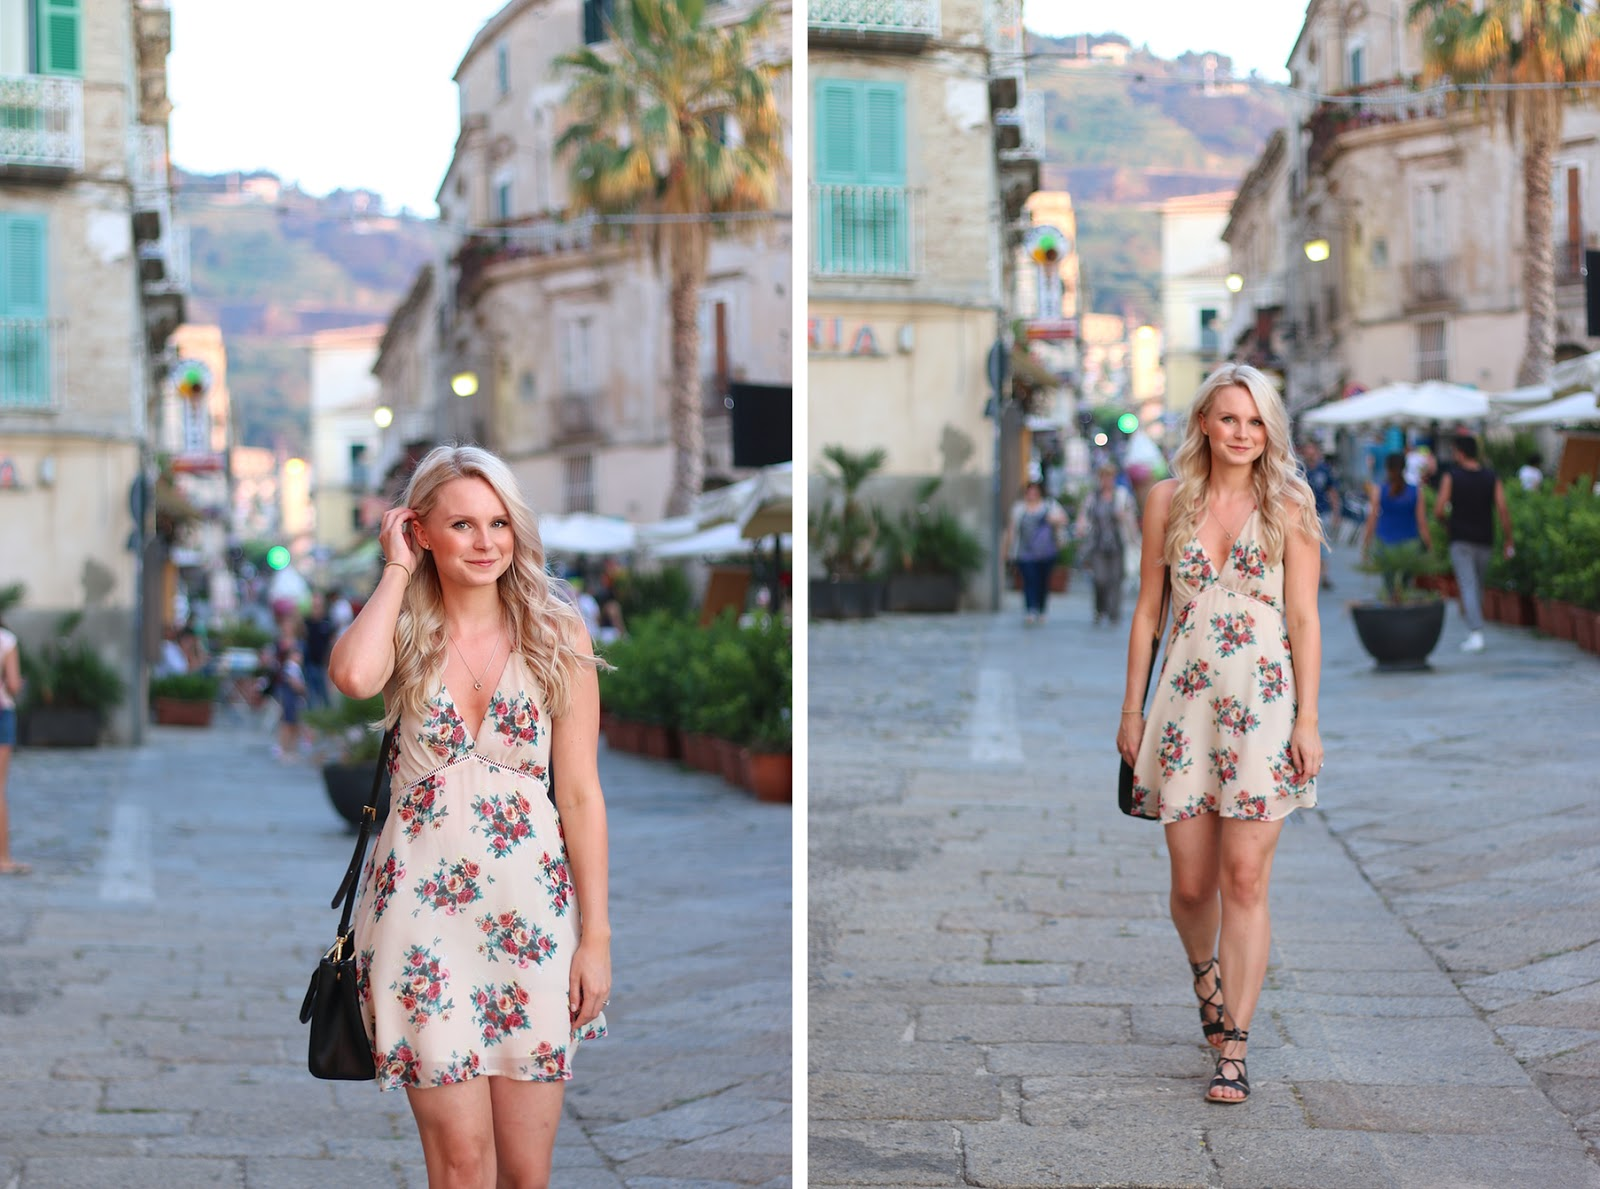 a blonde girl stands in the streets on italy, wearing a floral dress, happy and joyful on holiday